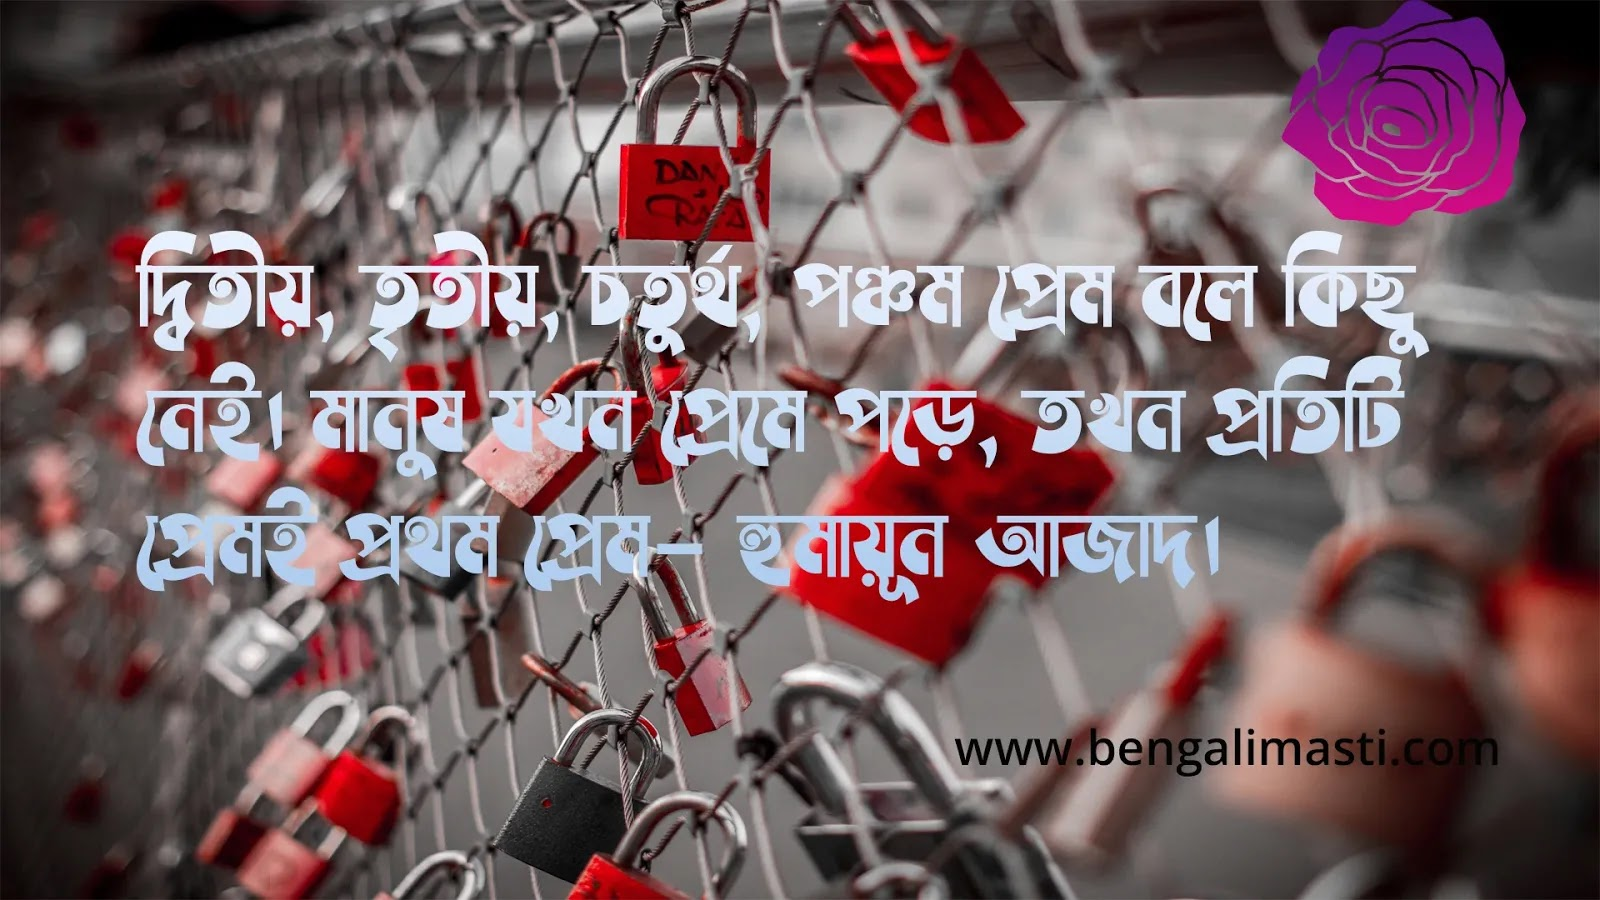 bengali sad quotes on love